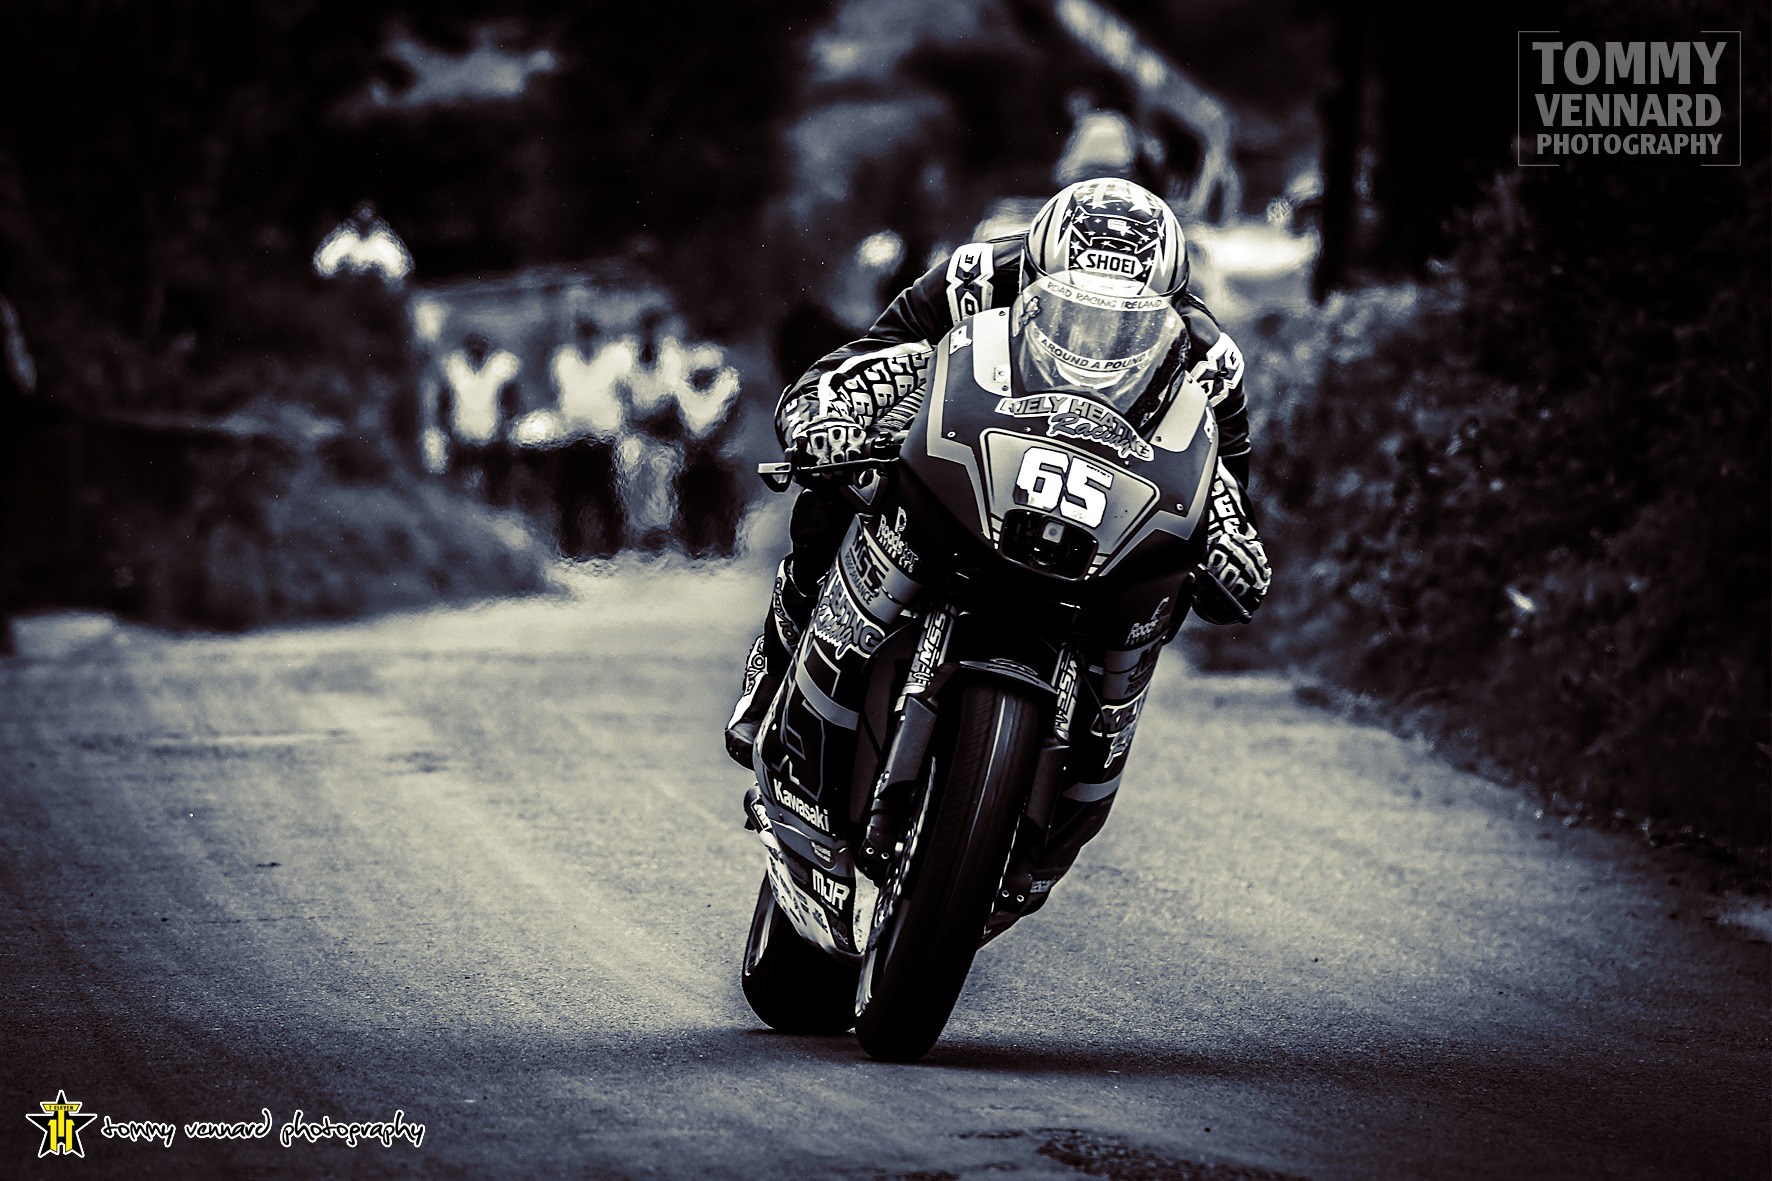 KDM Hire Cookstown 100 Preview – Part 2 – Super Twin/Lightweight Races